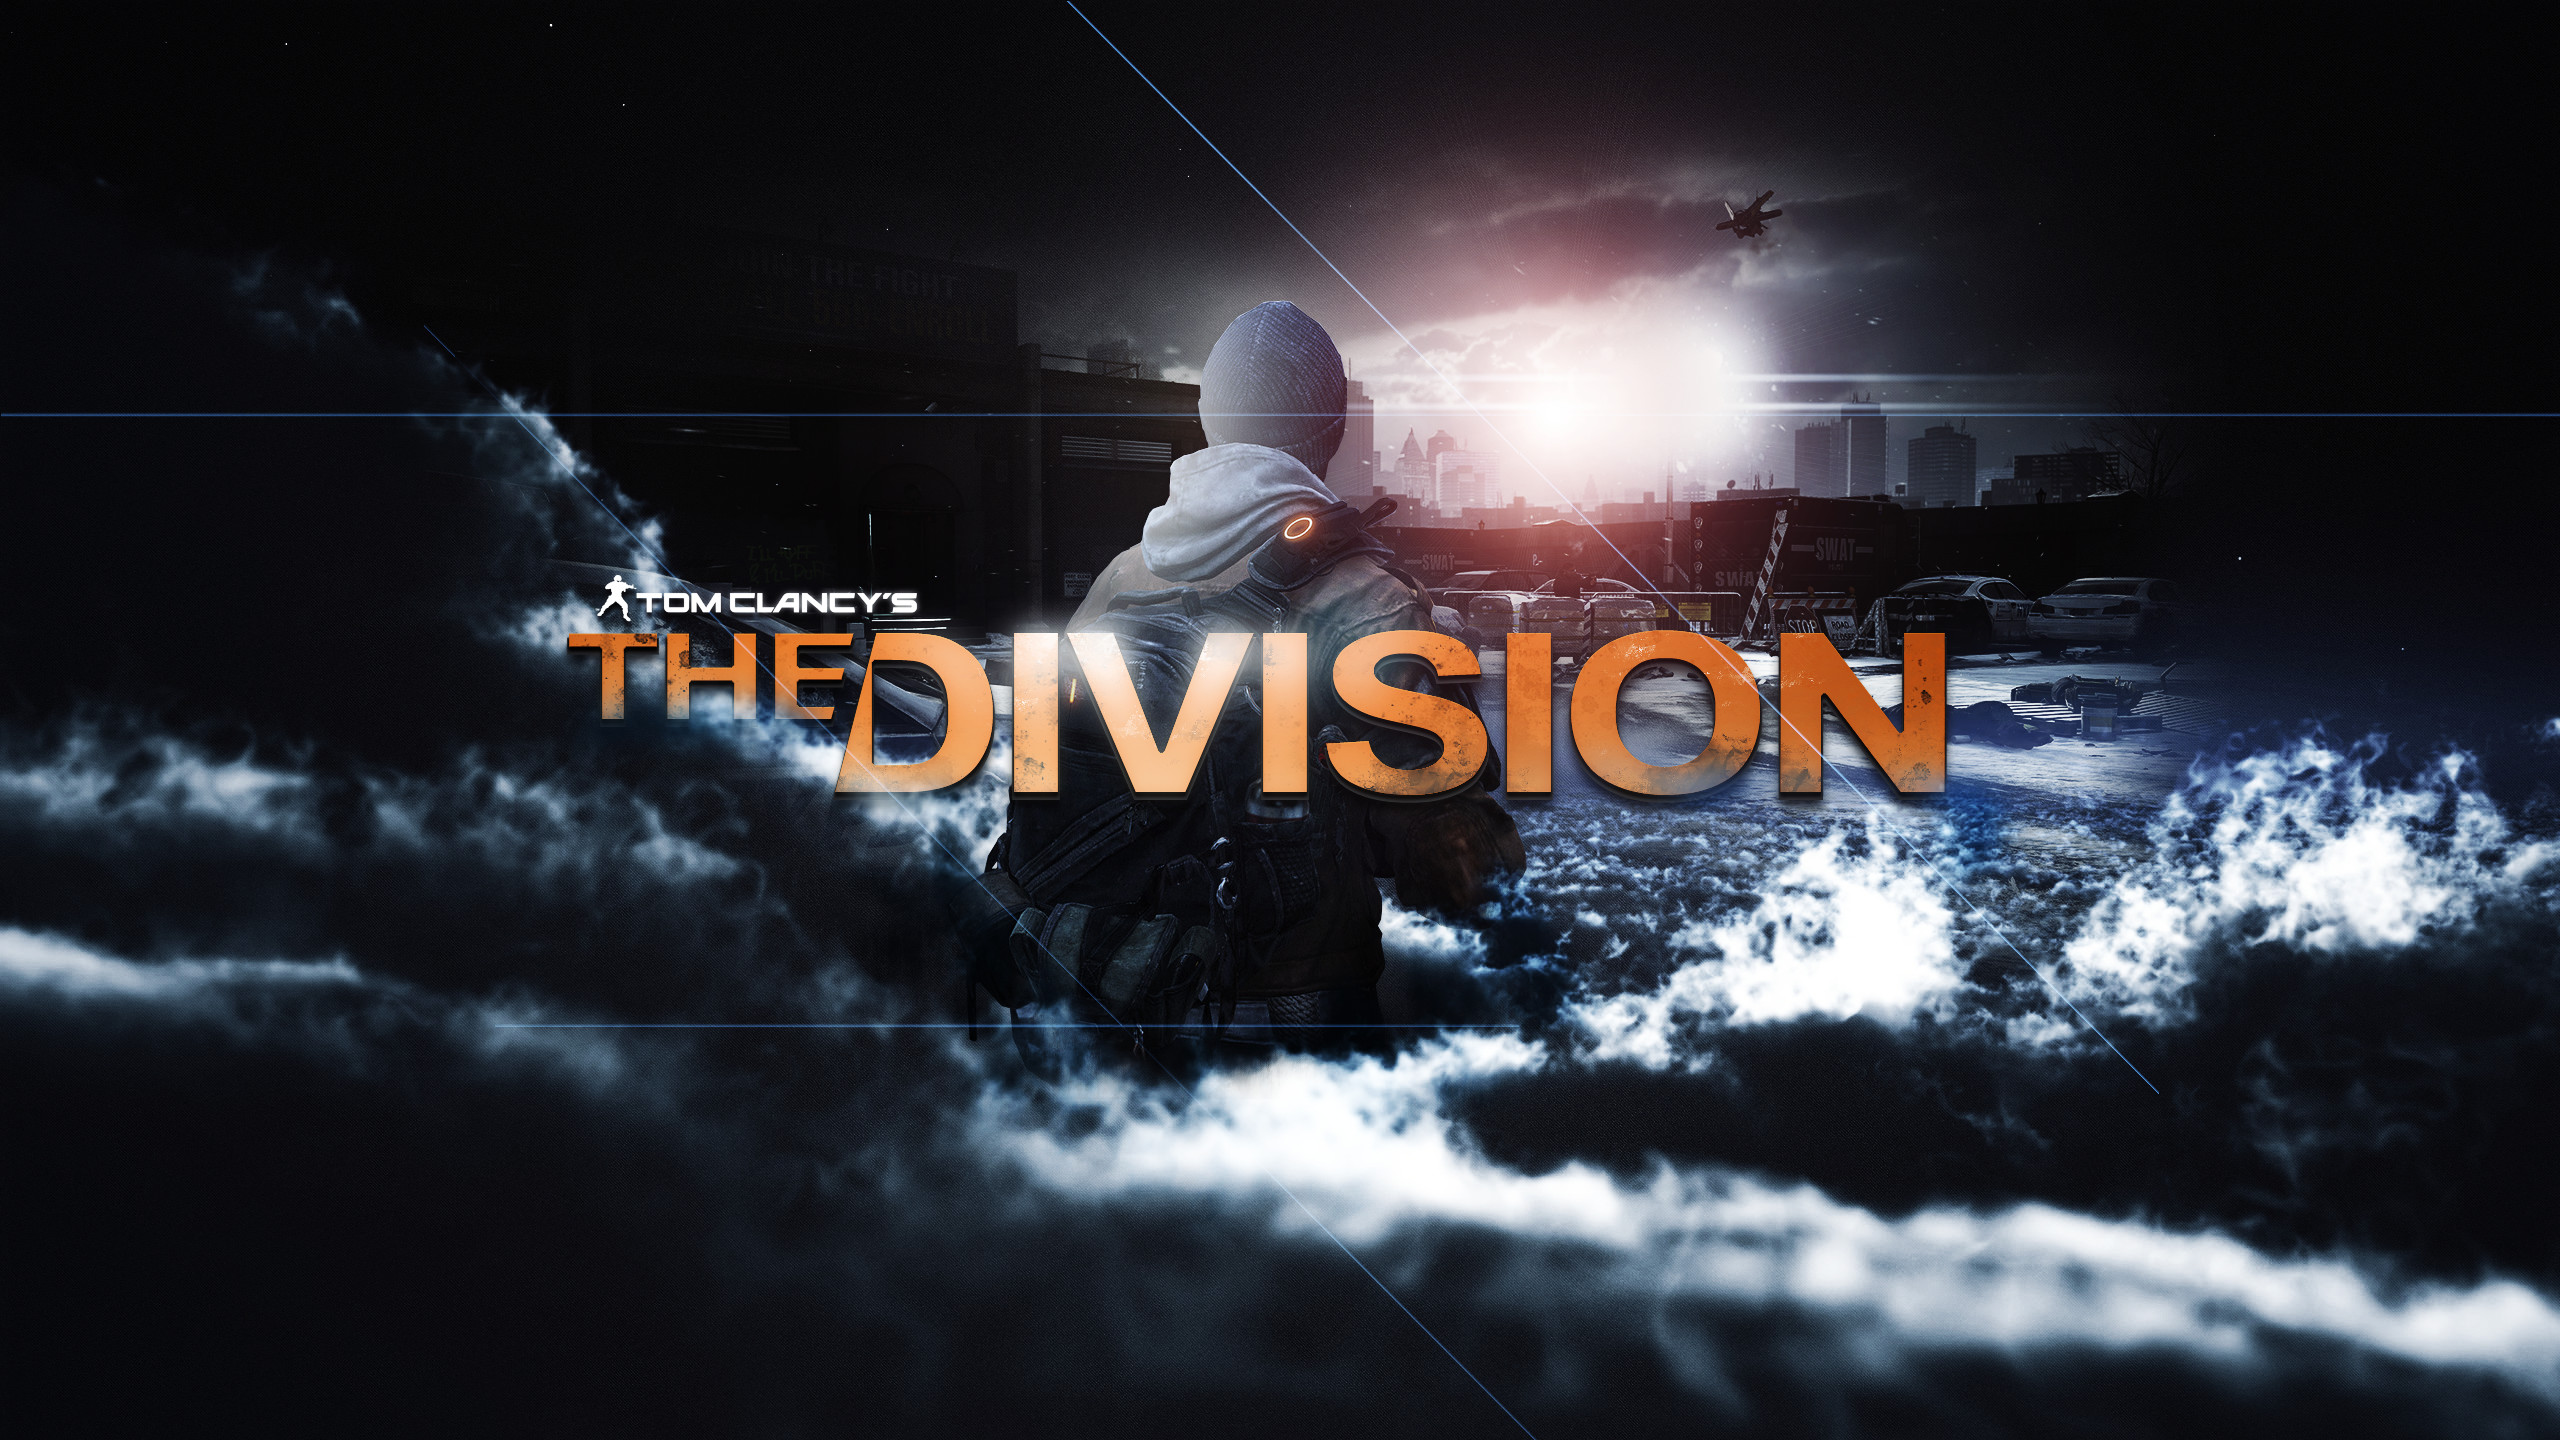 … Tom Clancy's The Division Wallpaper by Flaton